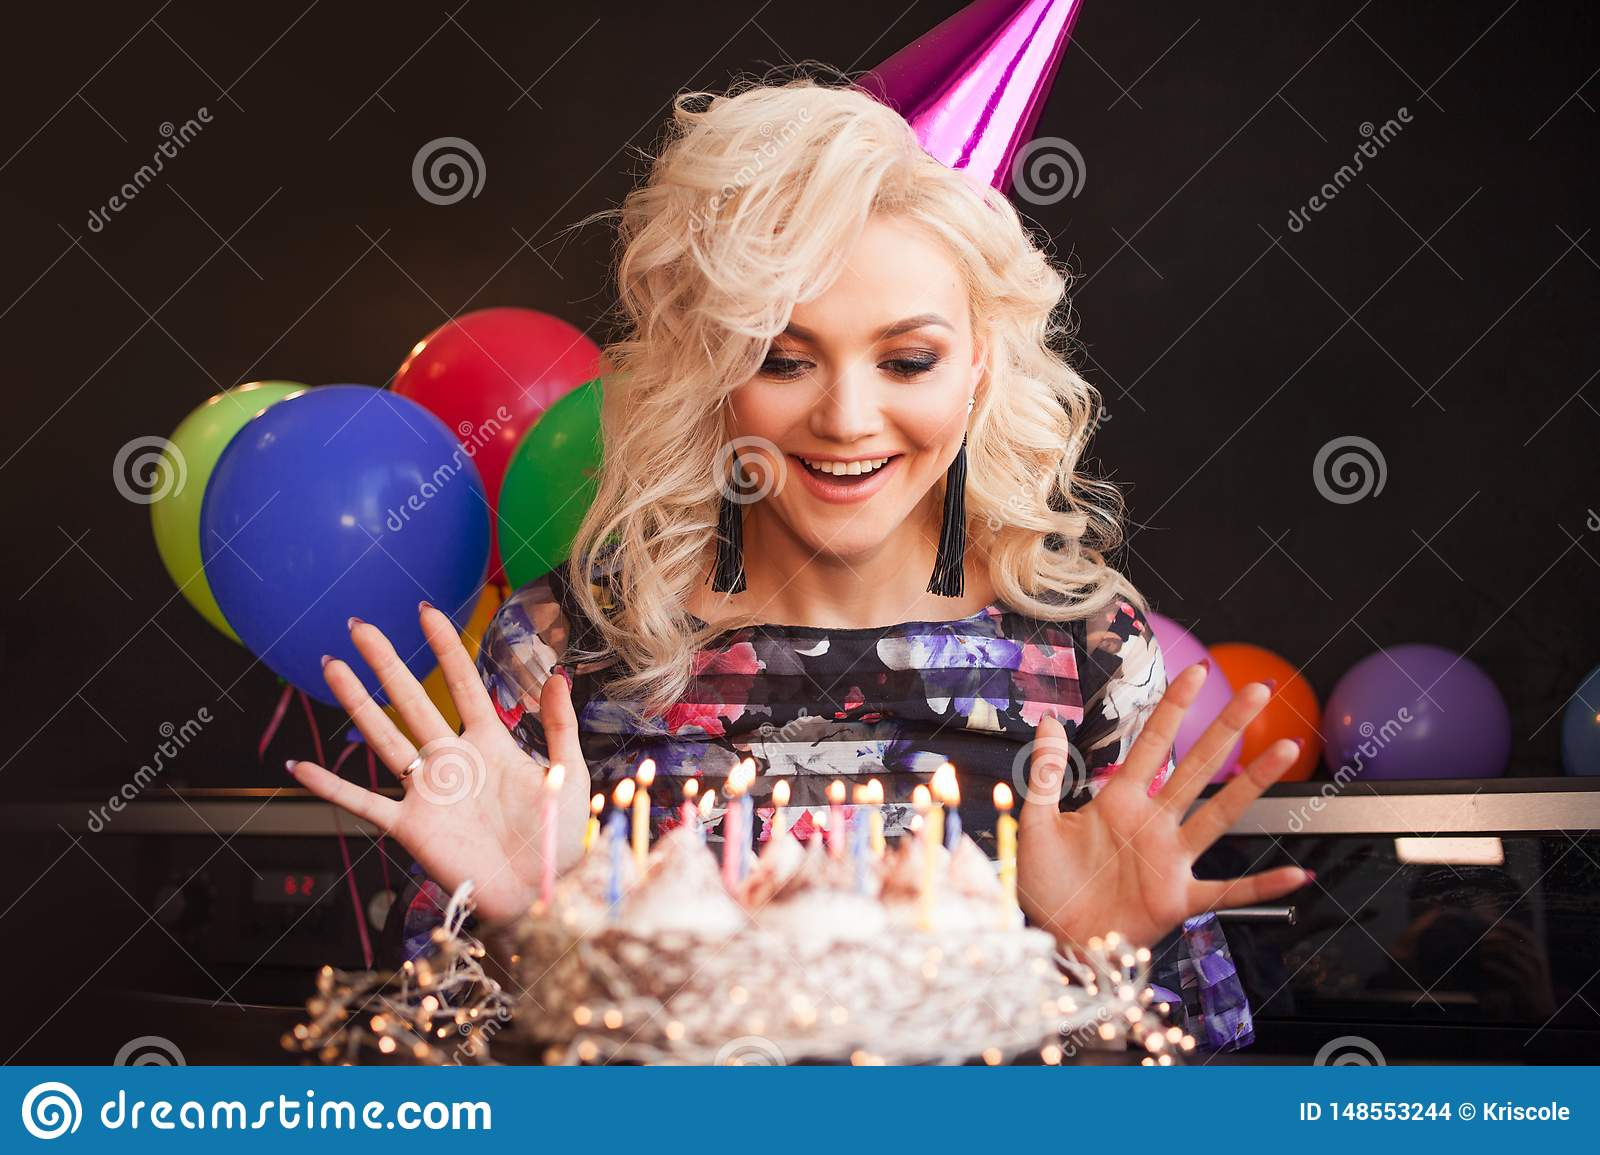 Birthday, a young woman blows out the candles on her birthday cake.